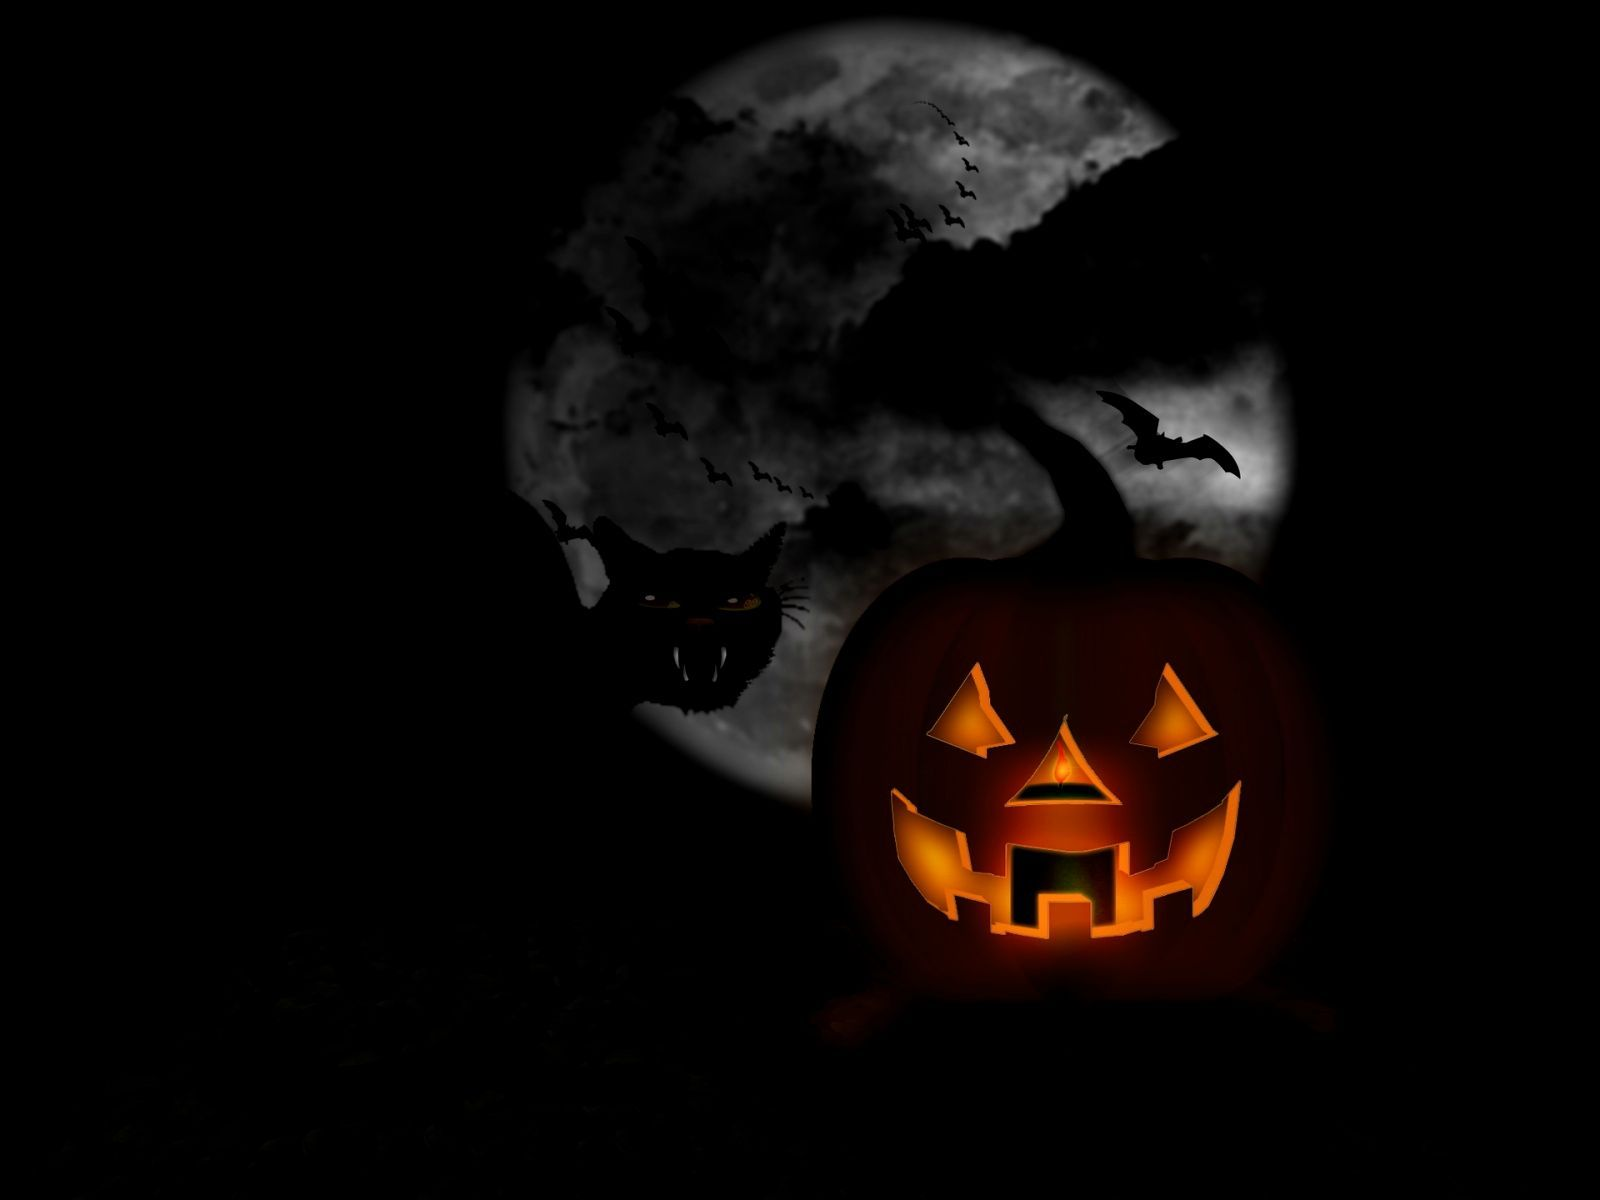 MDM Scary Halloween Wallpaper Free HD Photos 1920x1200 Wallpapers